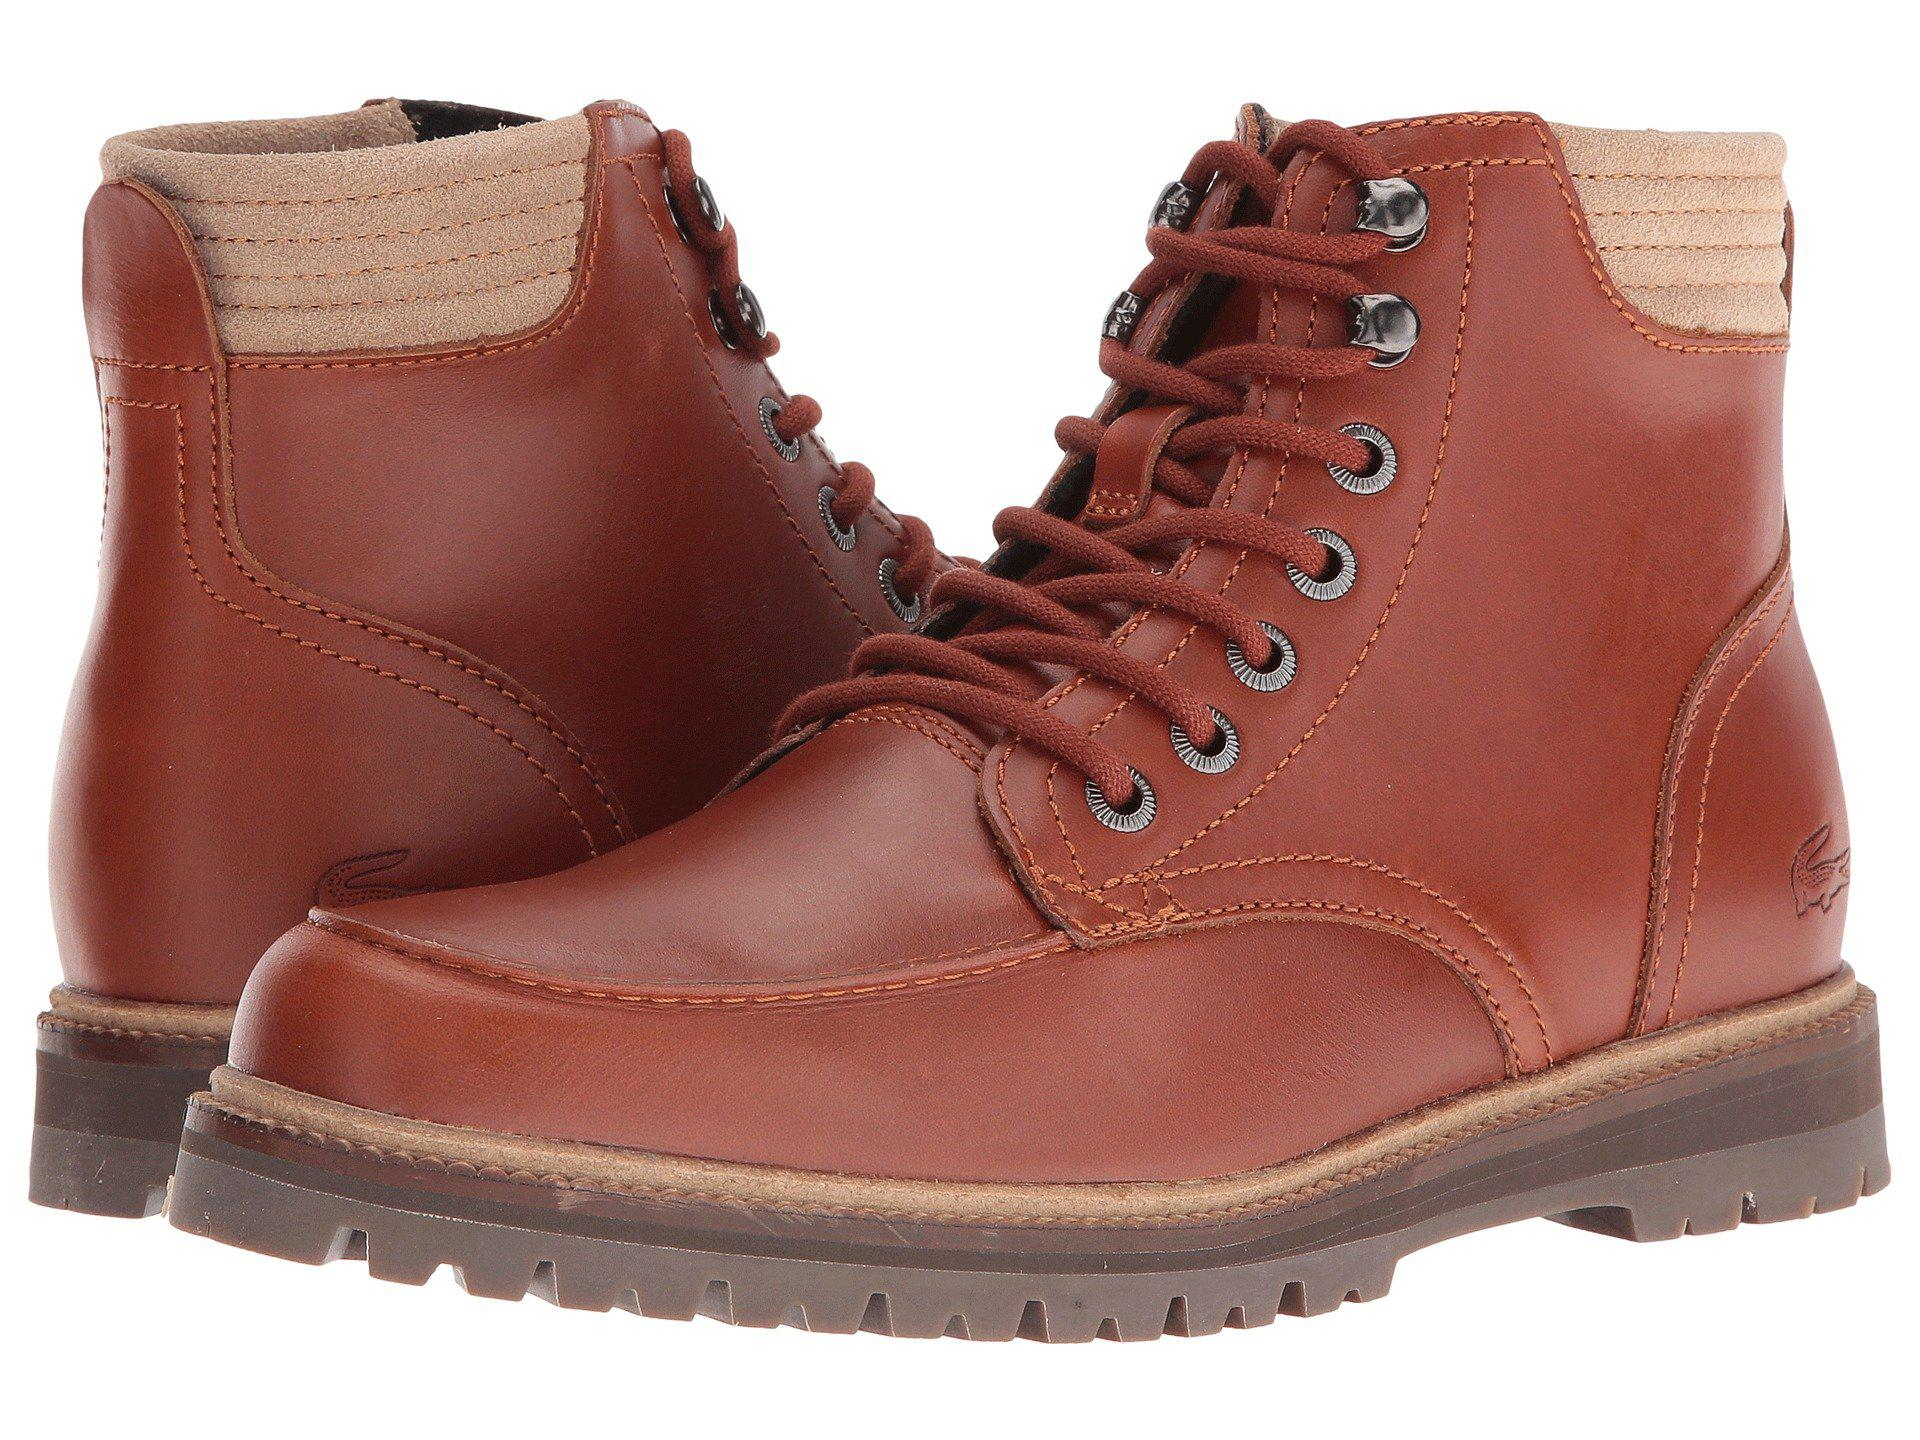 370ab532bb9c Lyst - Lacoste Montbard Boot 416 1 in Brown for Men - Save 40%